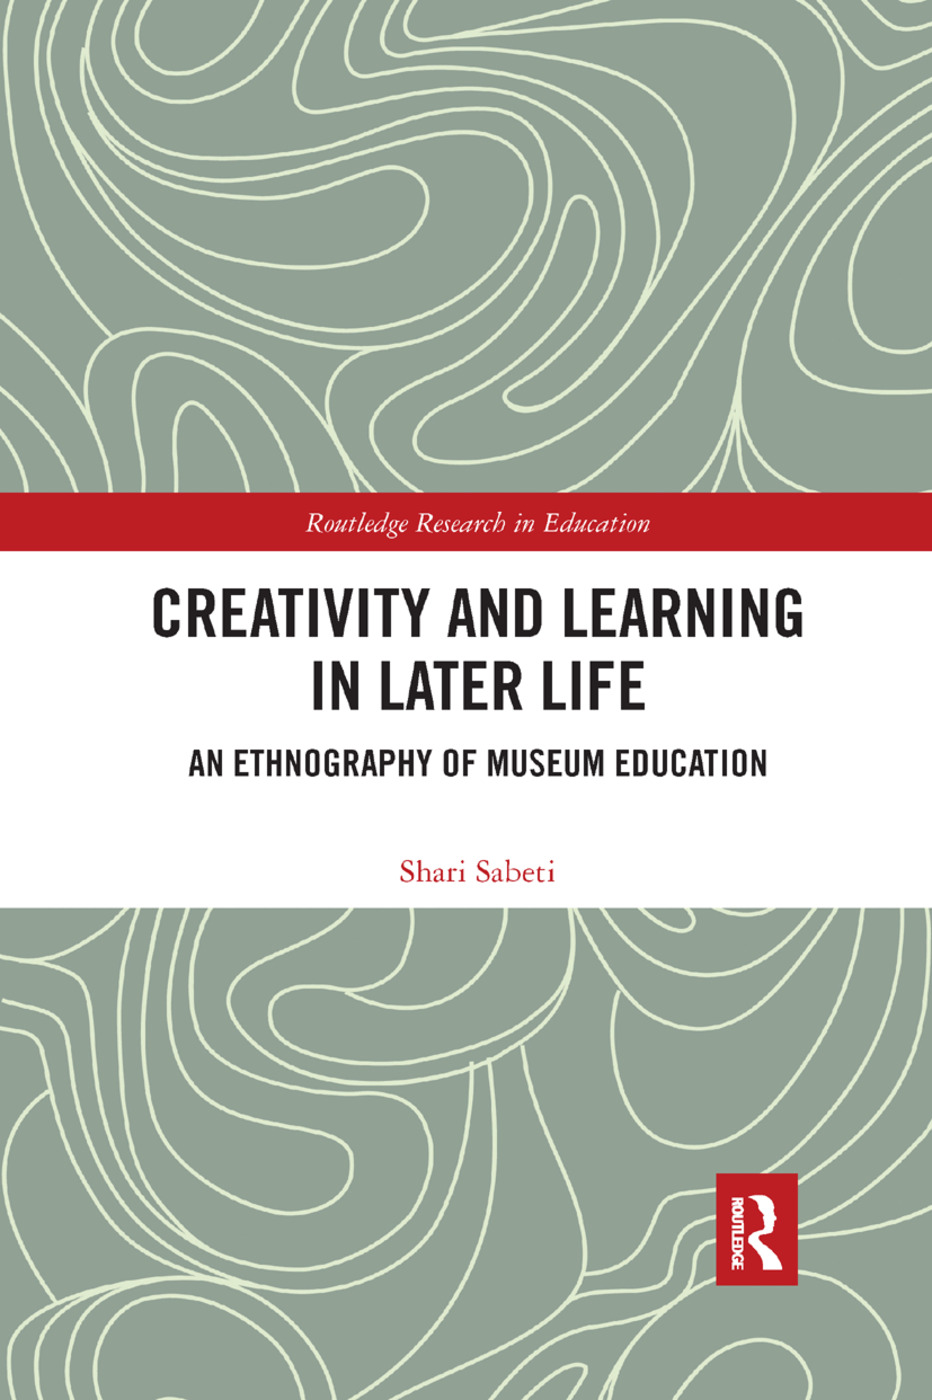 Creativity and Learning in Later Life: An Ethnography of Museum Education book cover